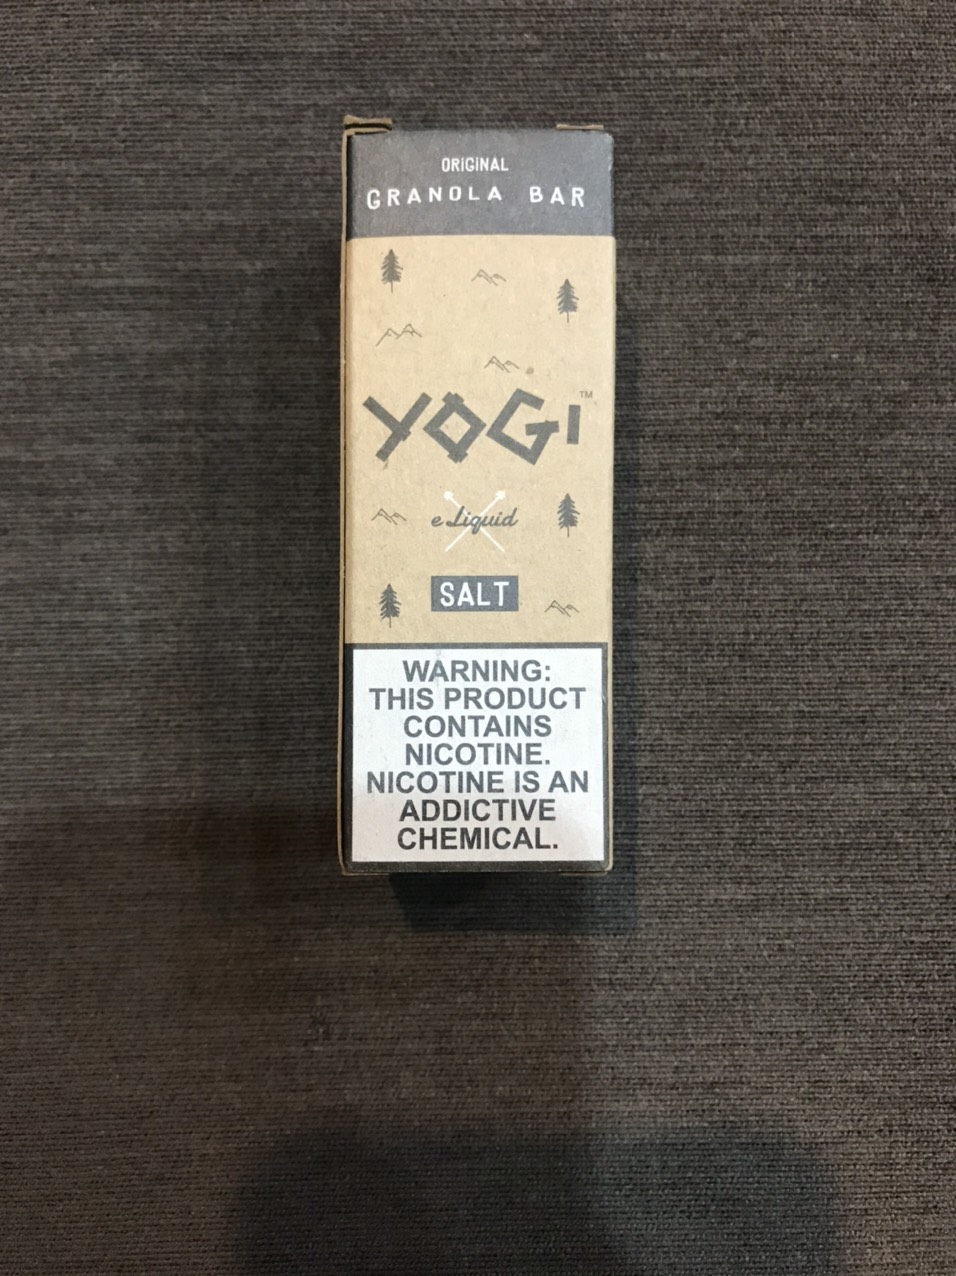 USA | Salt 35ni - 50ni  | 30ml | YOGI | GRANOLA BAR | Ngũ cốc  |VpeVL